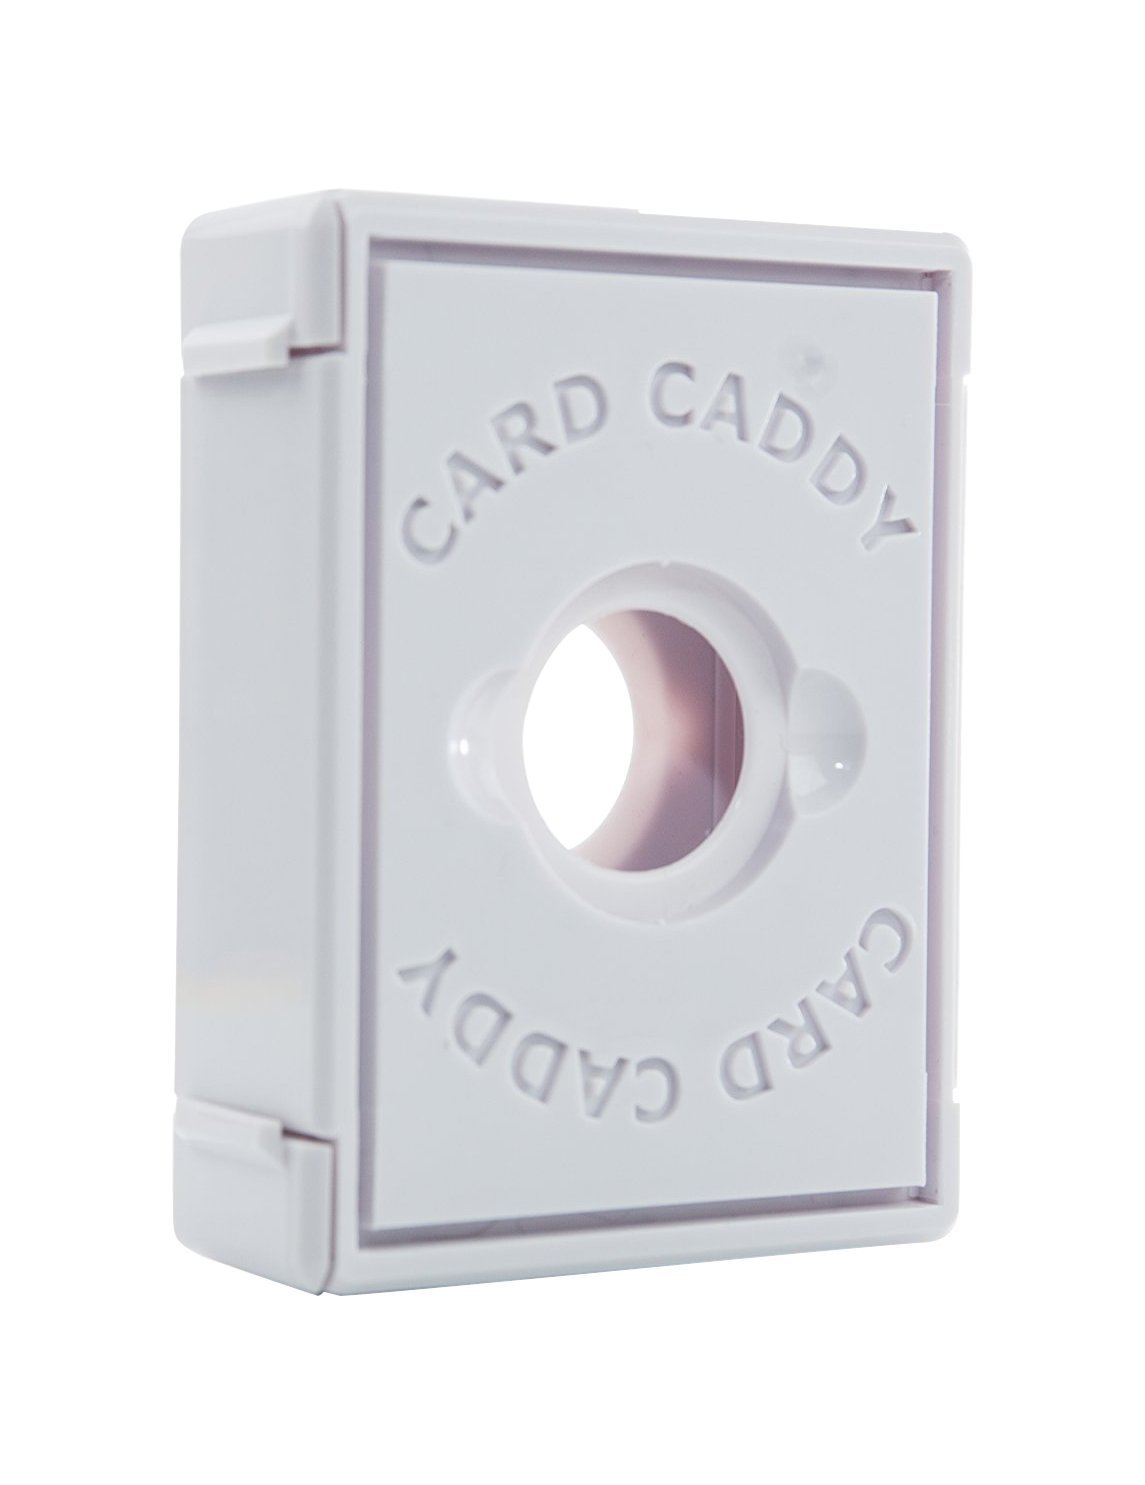 The Card Caddy Single Decker travel product recommended by Chris Nichols on Lifney.